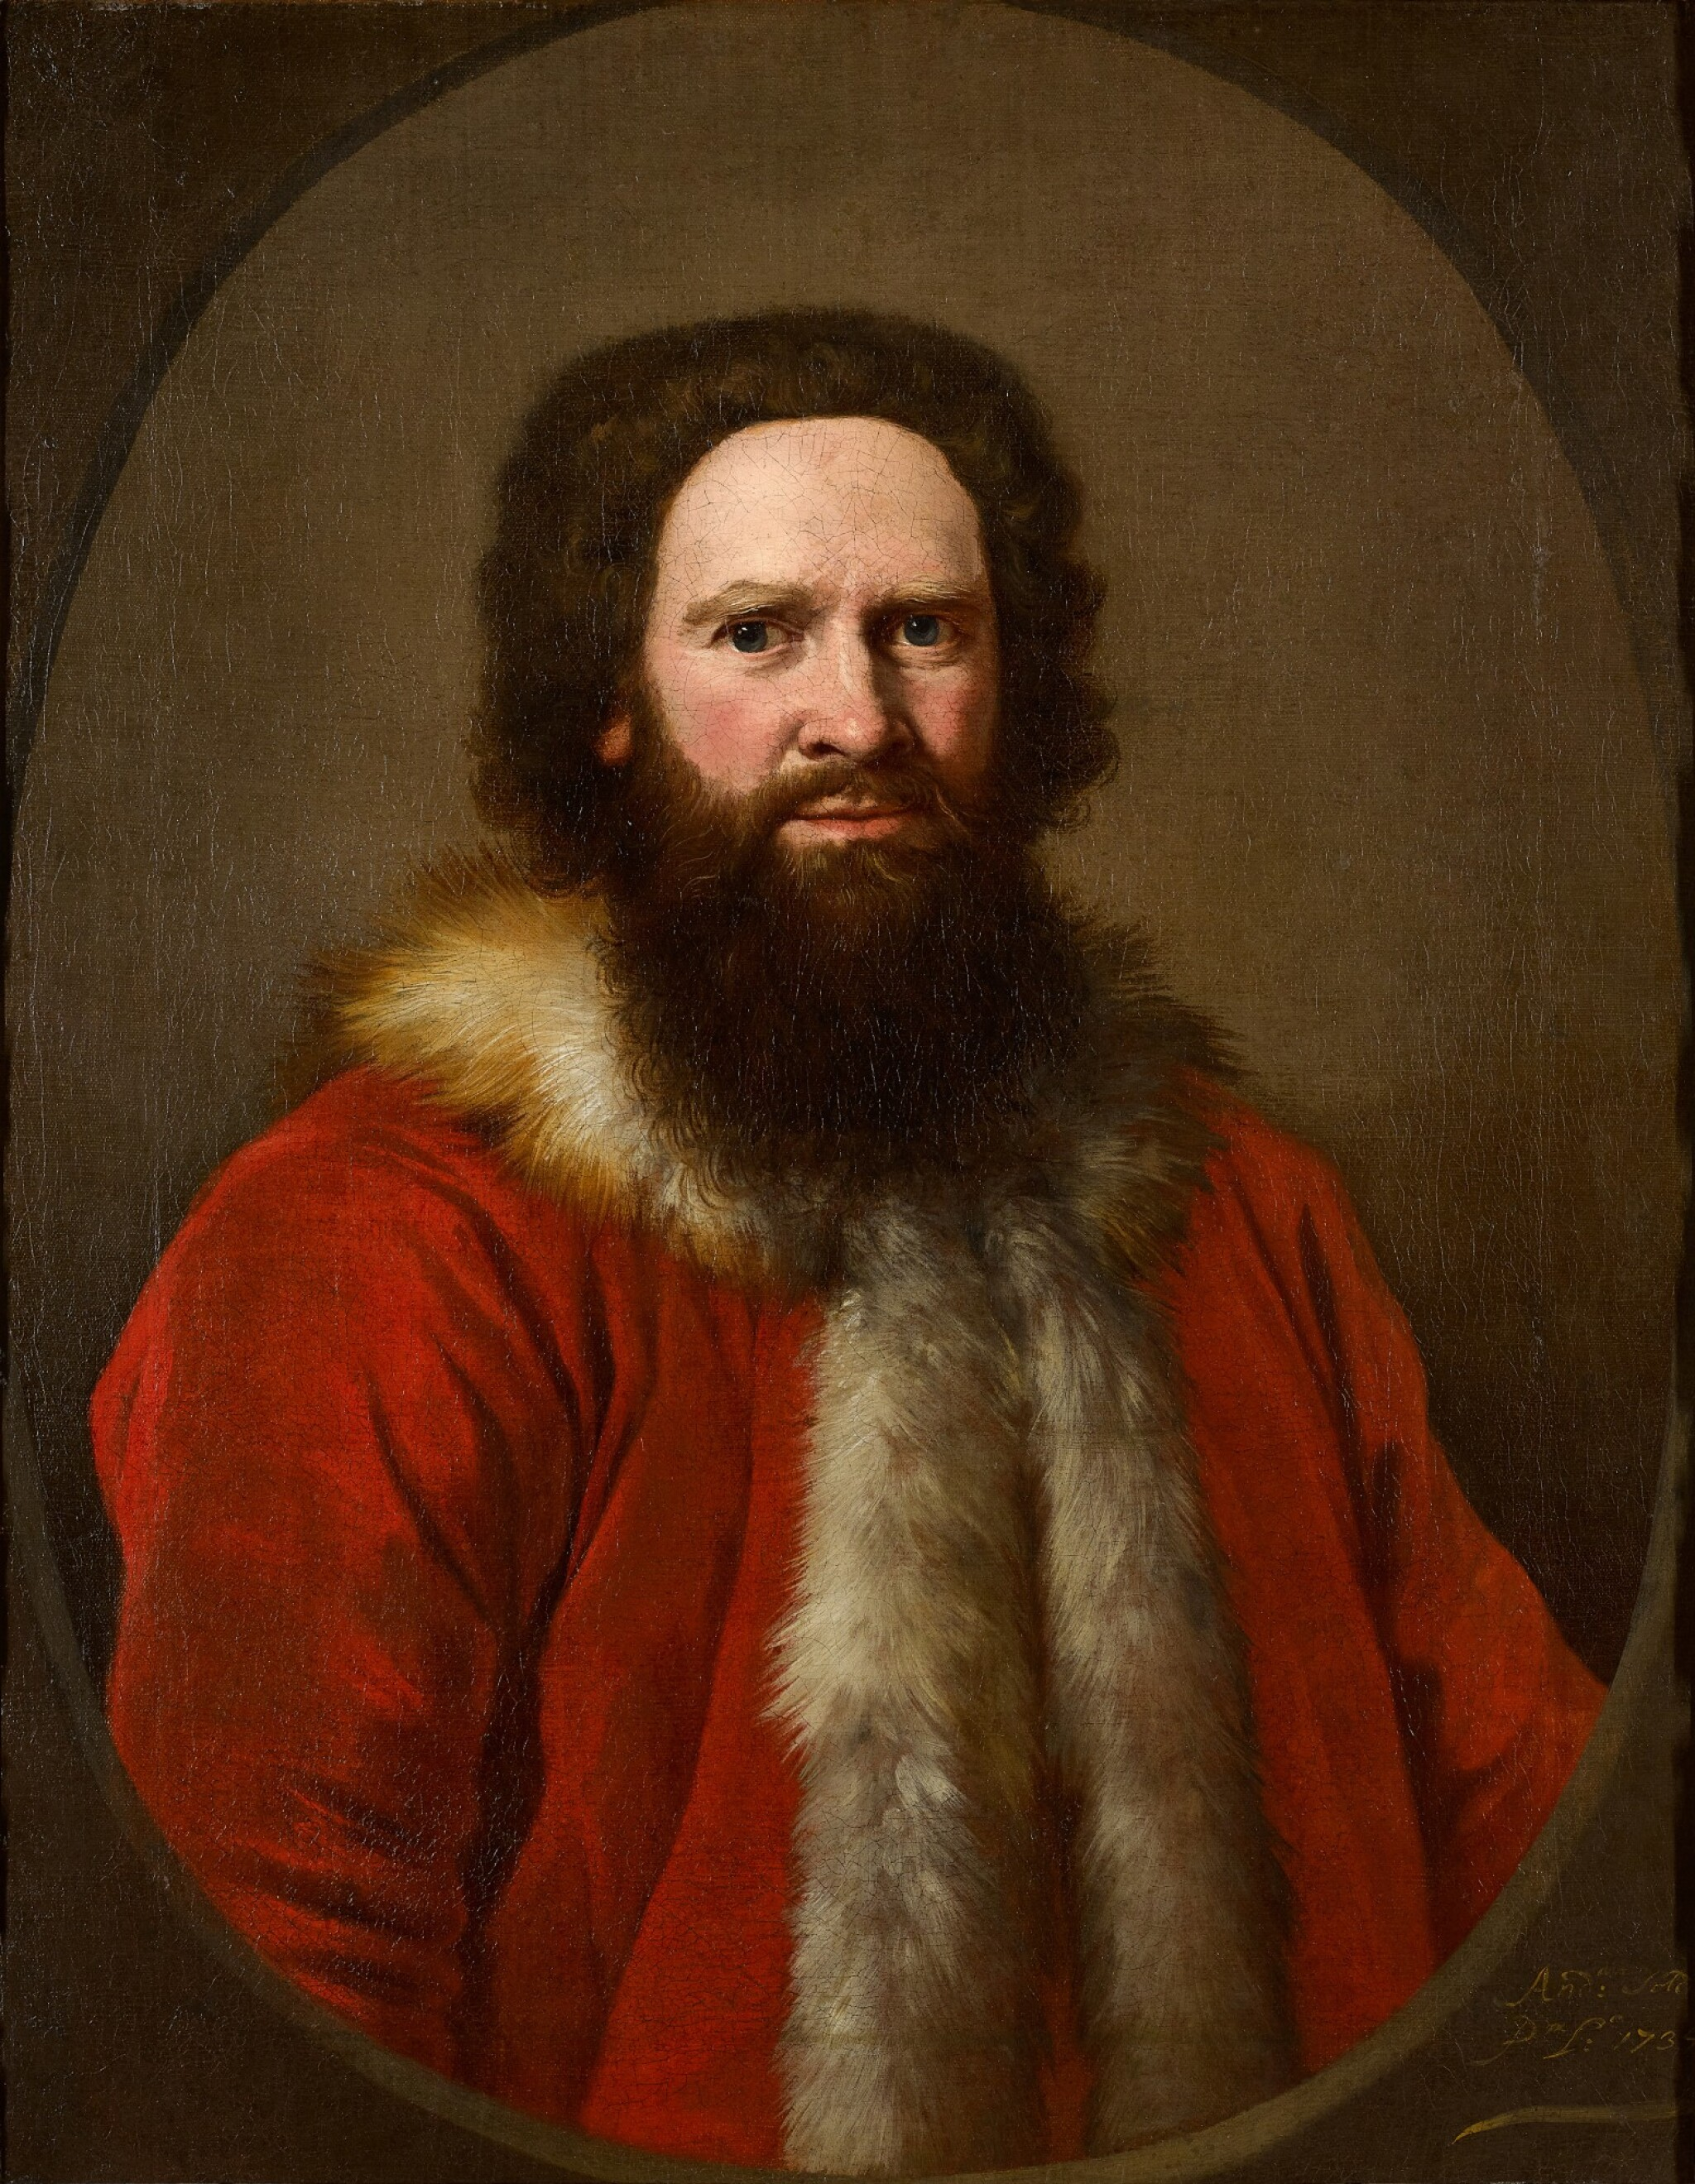 View full screen - View 1 of Lot 68. ANDREA SOLDI  |  PORTRAIT OF A BEARDED GENTLEMAN IN TURKISH COSTUME, POSSIBLY A MERCHANT OF THE LEVANT.